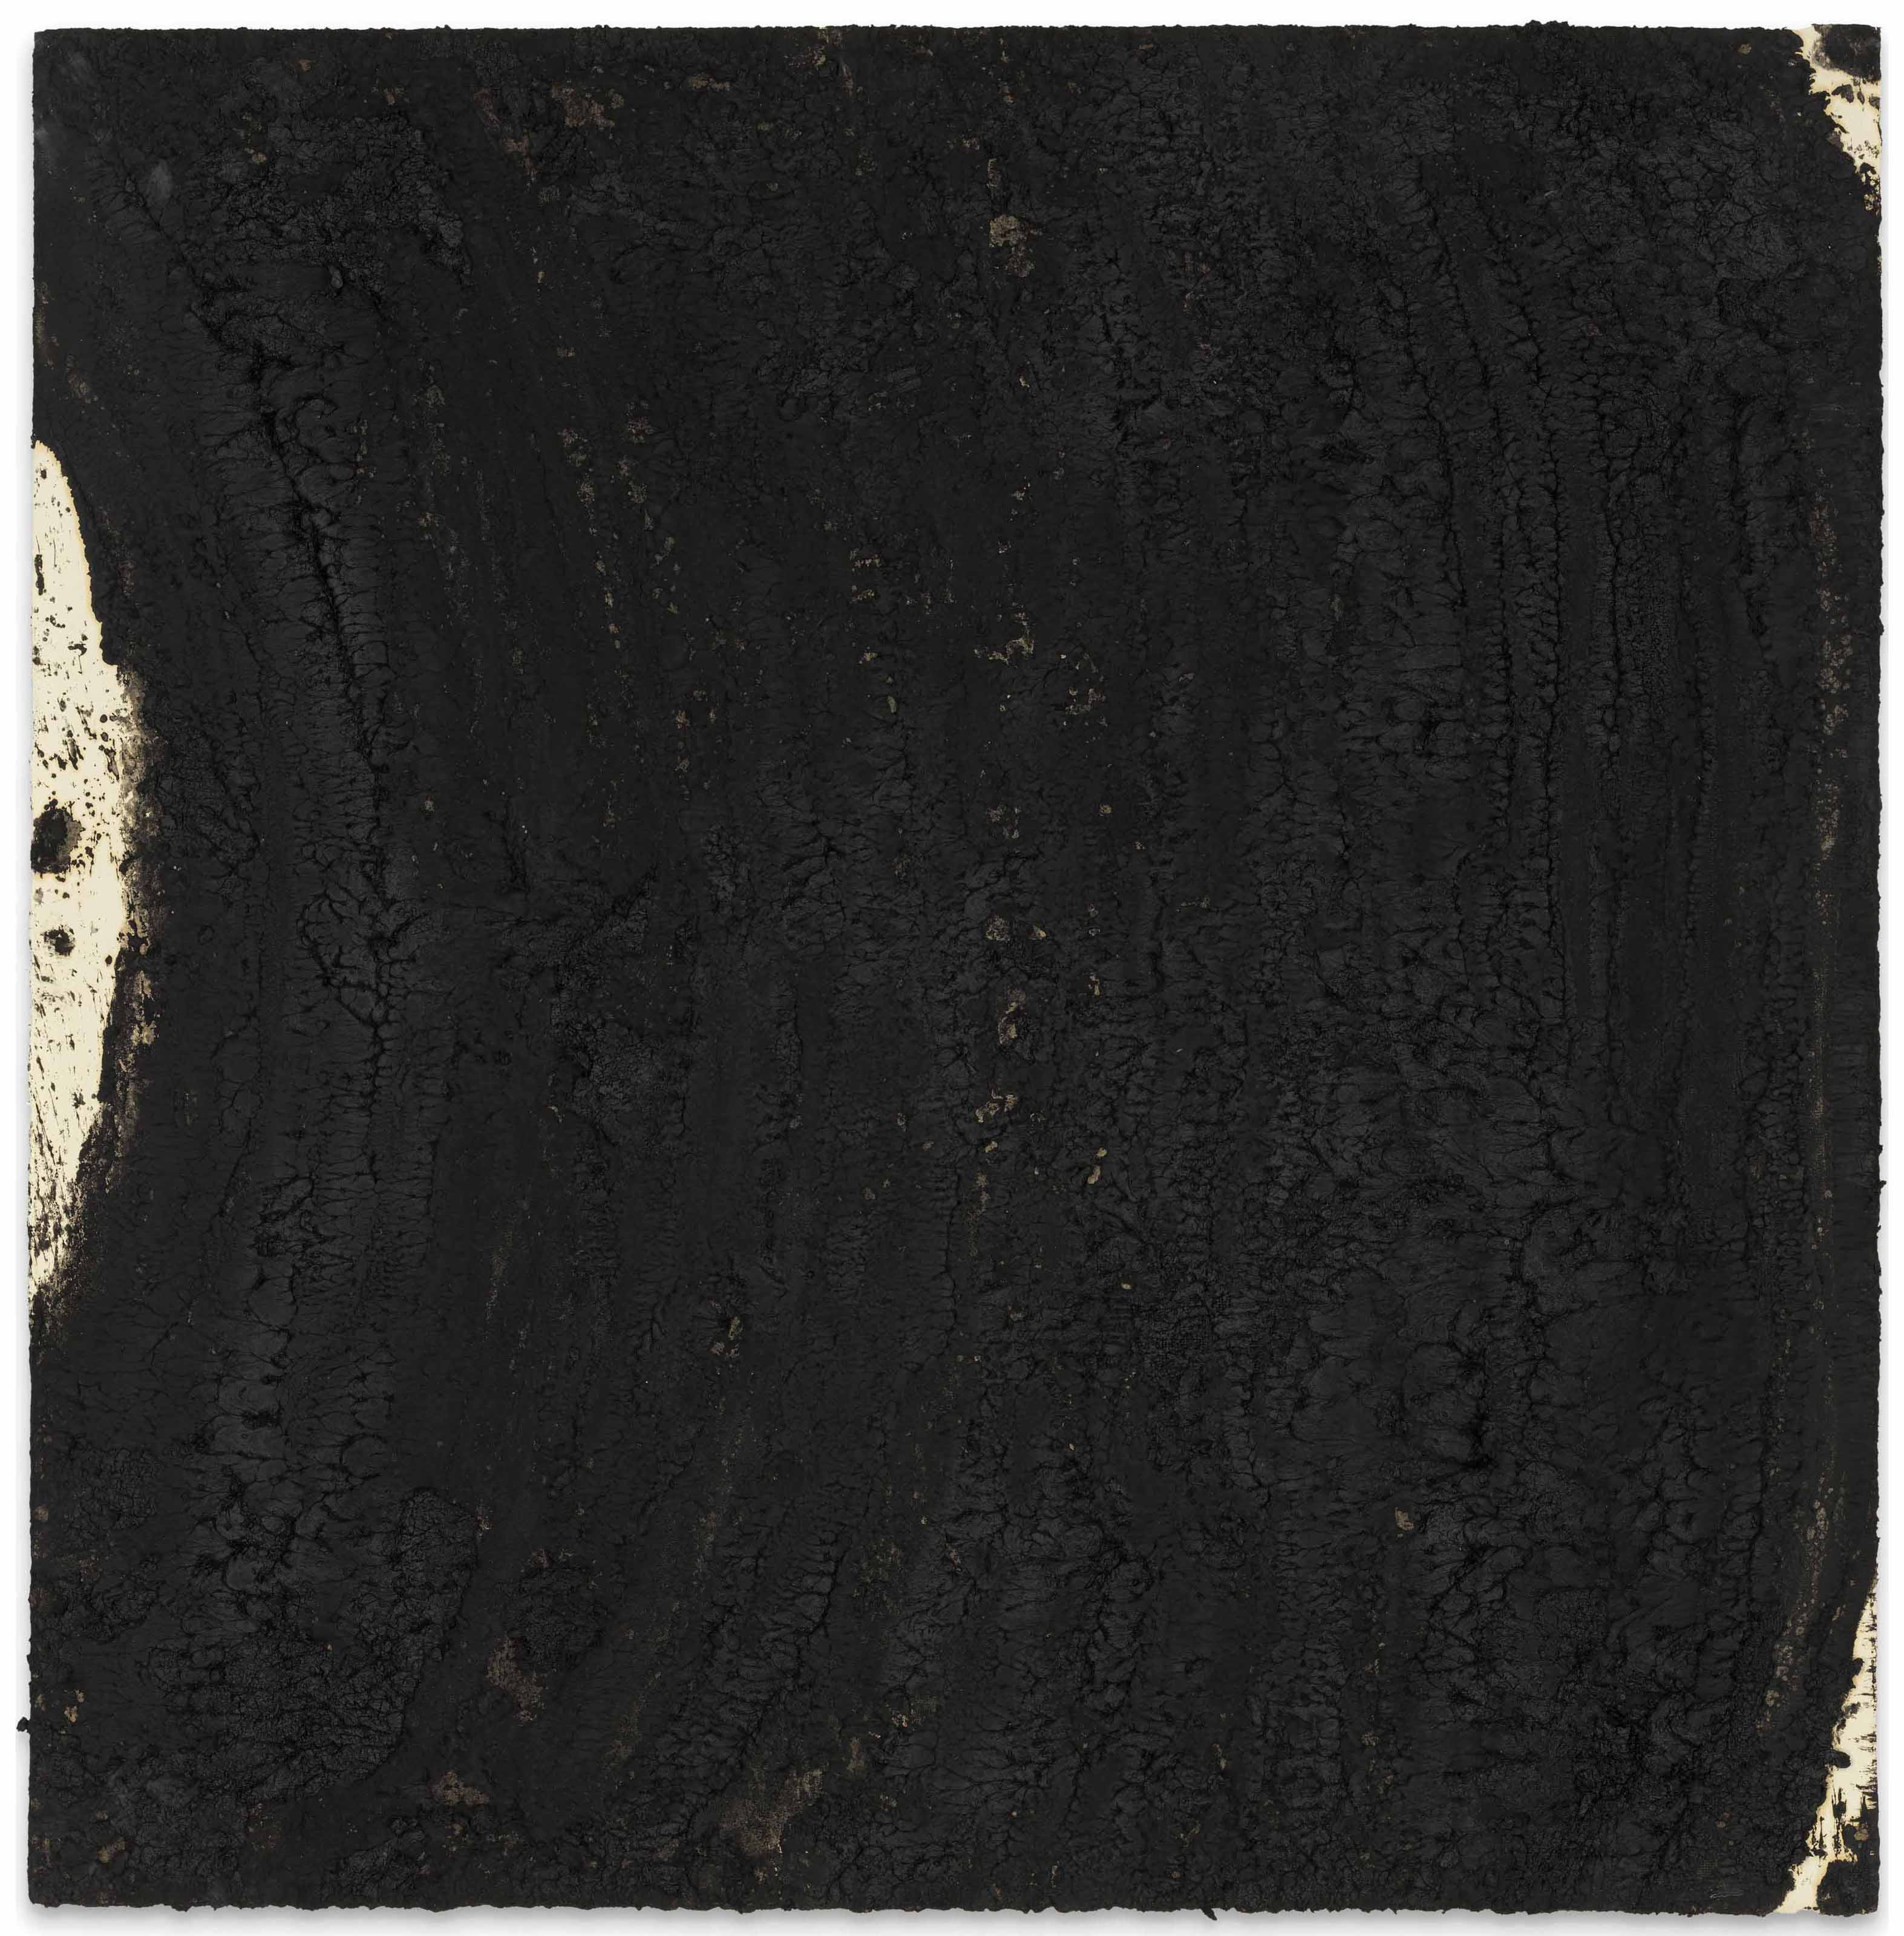 Richard Serra (b. 1939), Stratum 8, 2007. 39½ x 40 in (100.3 x 101.6 cm). Estimate £250,000-350,000. This lot is offered in the Post-War and Contemporary Art Day Auction on 7 March 2018  at Christie's in London